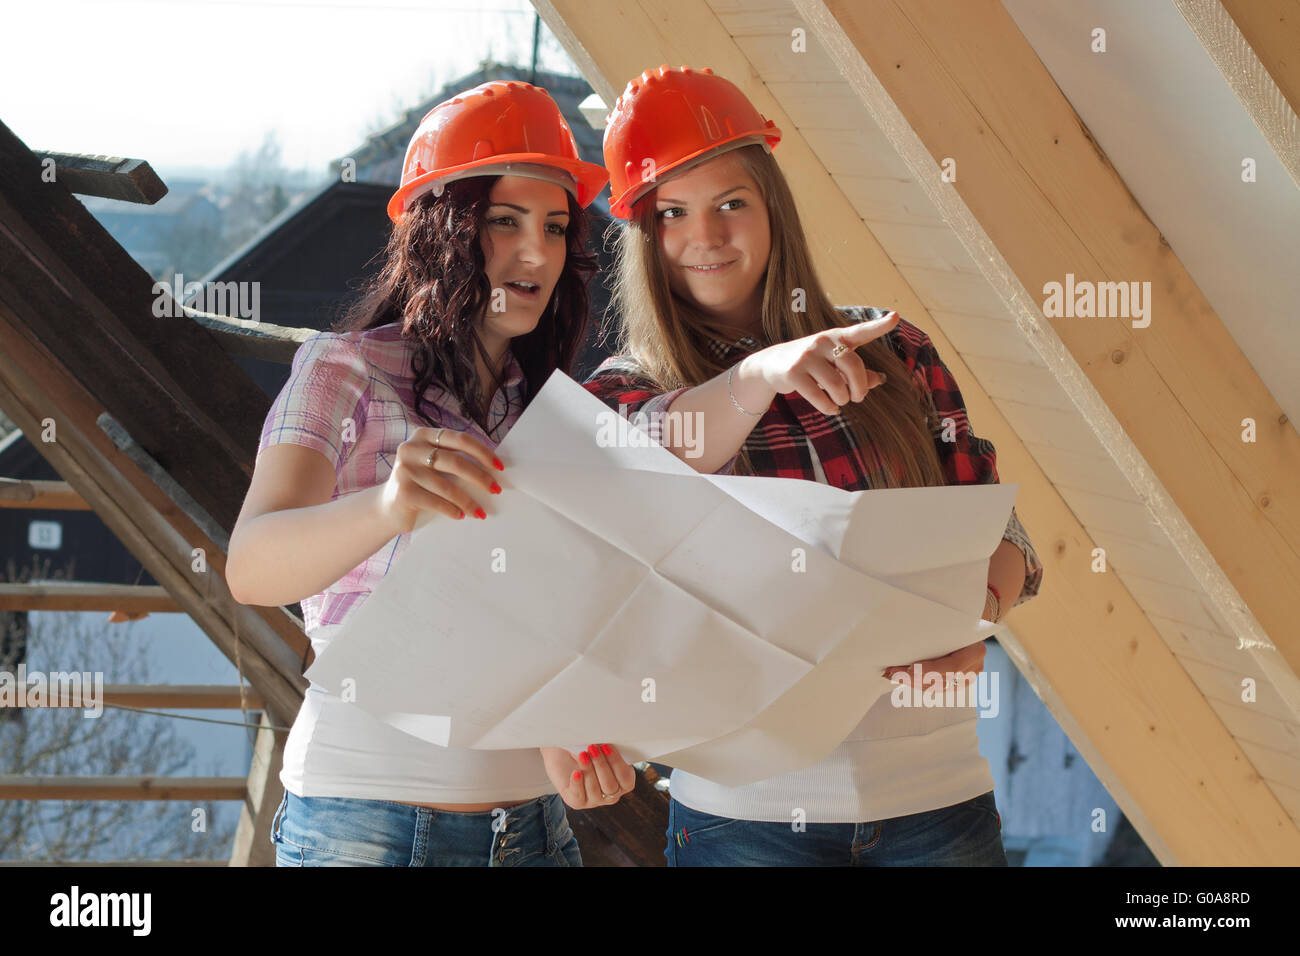 Two young women workers on the roof - Stock Image